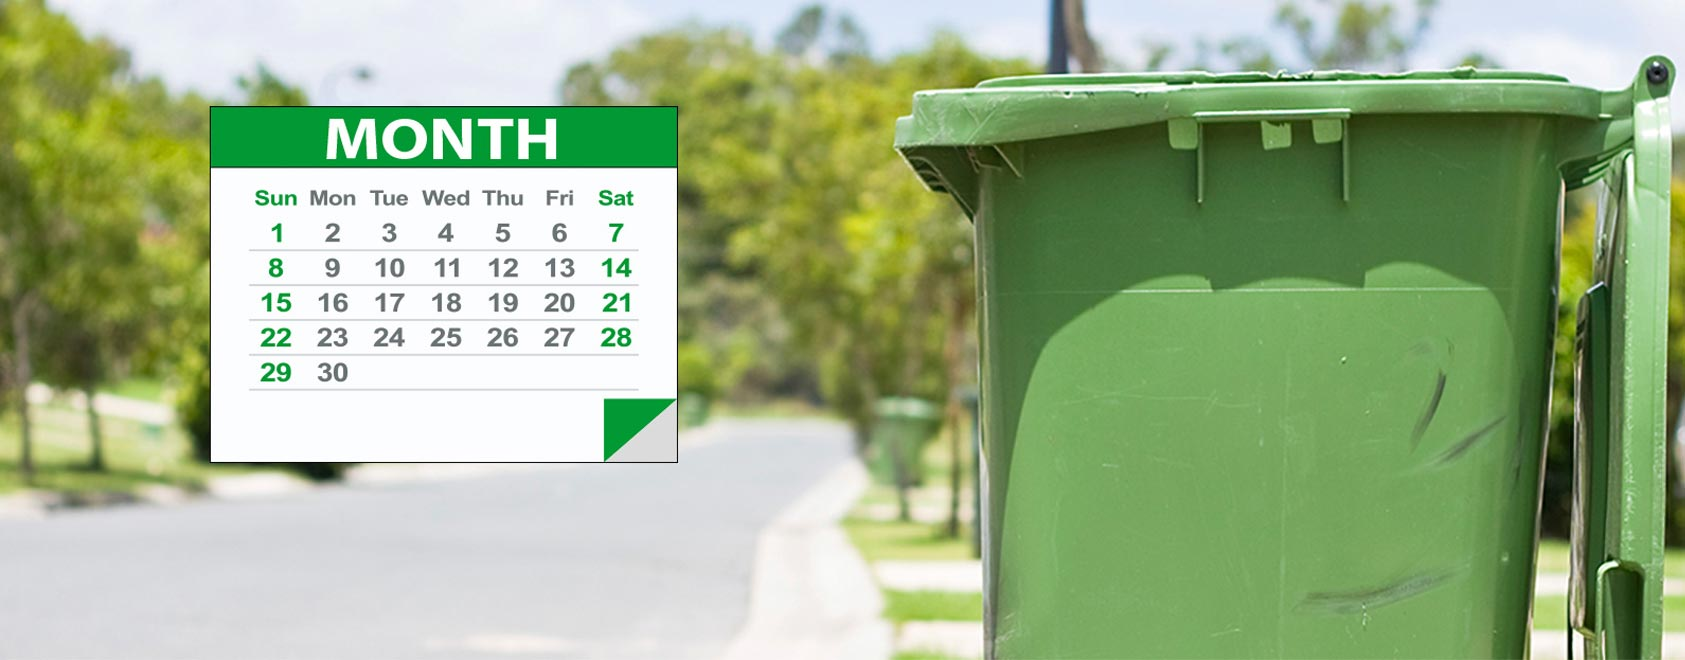 Garbage & Recycling | City of Hamilton, Ontario, Canada